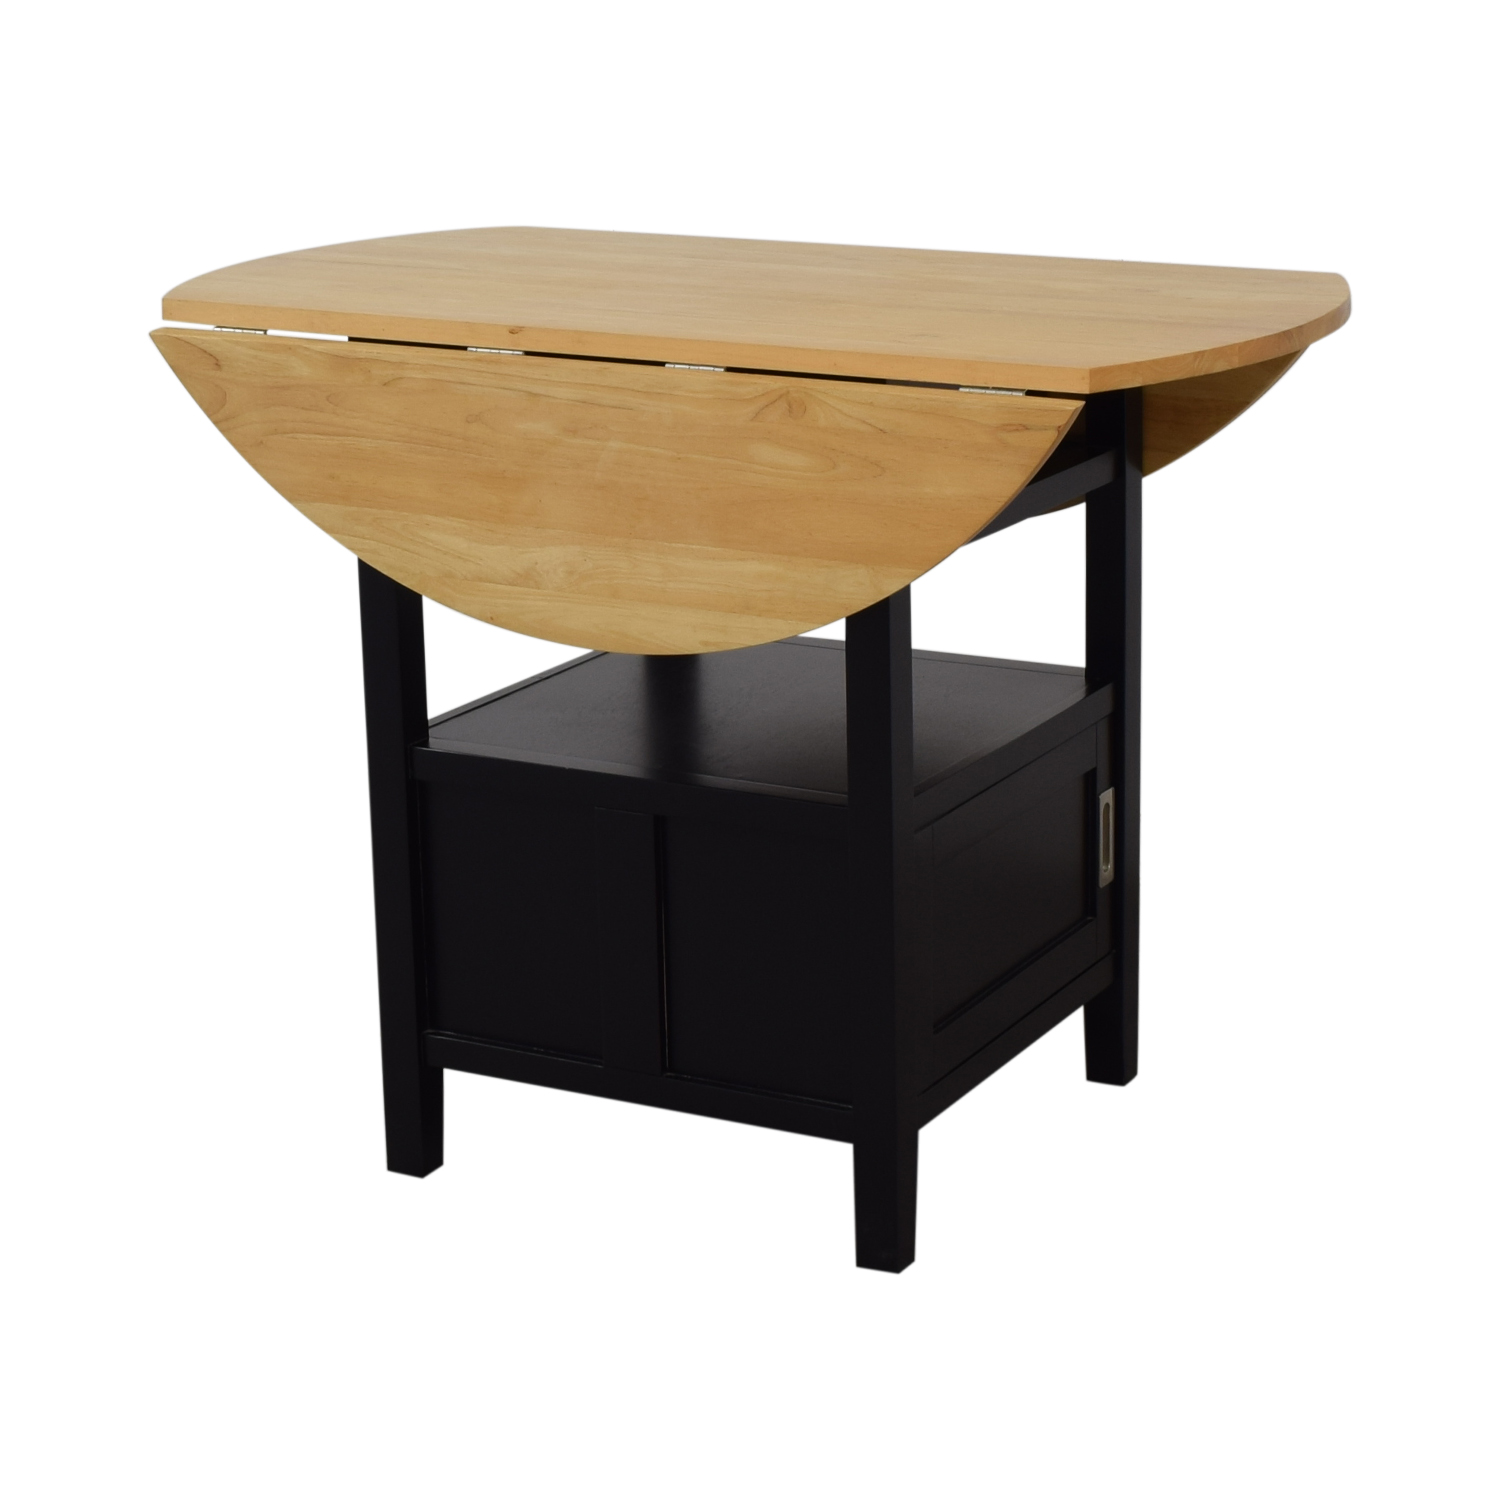 Crate & Barrel Crate & Barrel Belmont High Dining Table with Storage discount